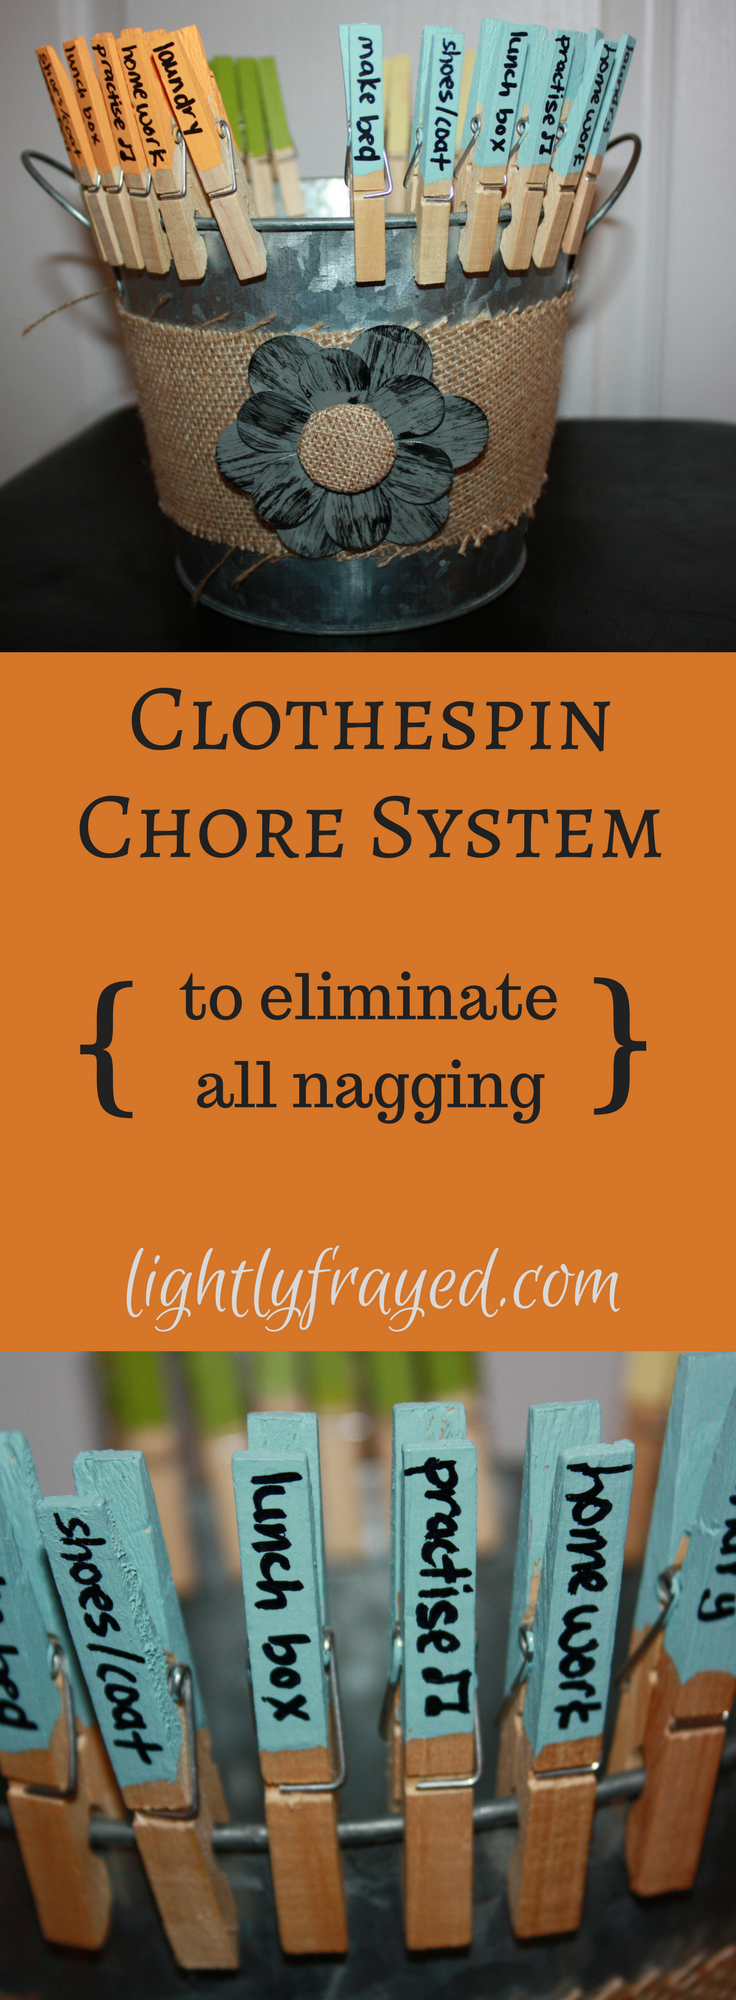 clothespin chore system